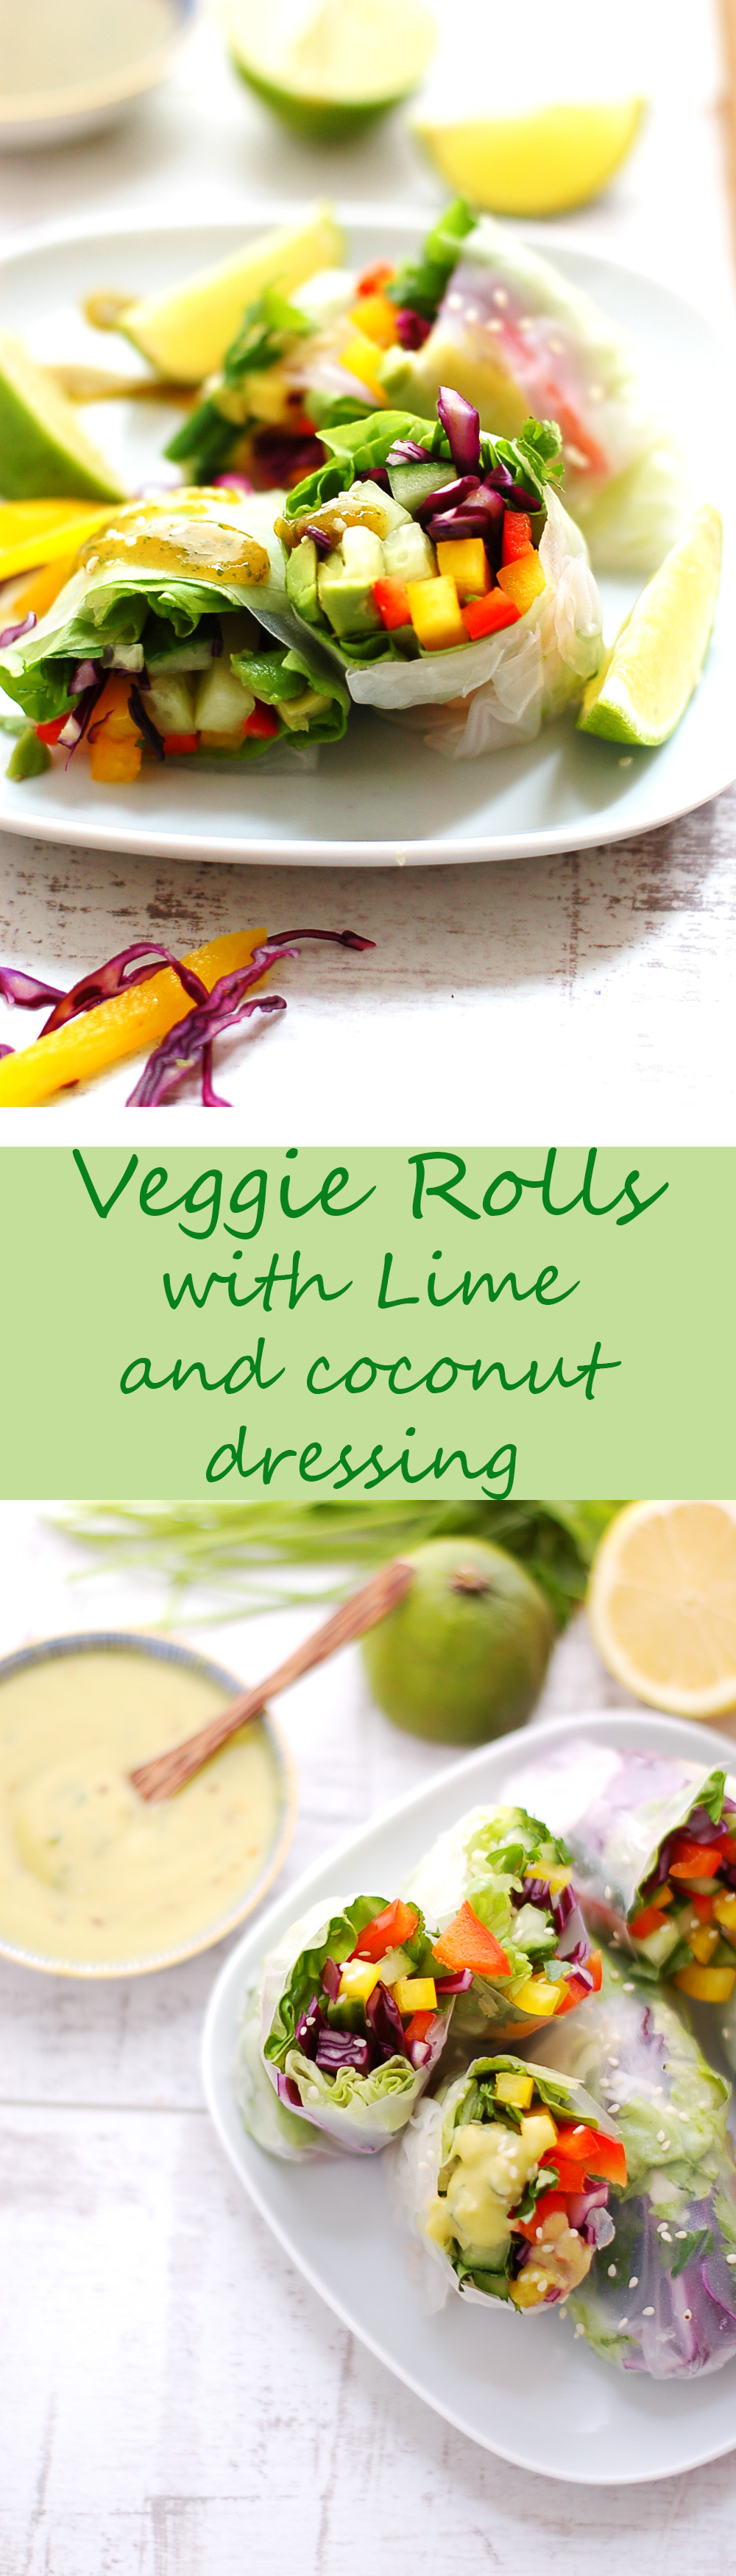 Yummy and Healthy Veggie Rolls with lime and coconu